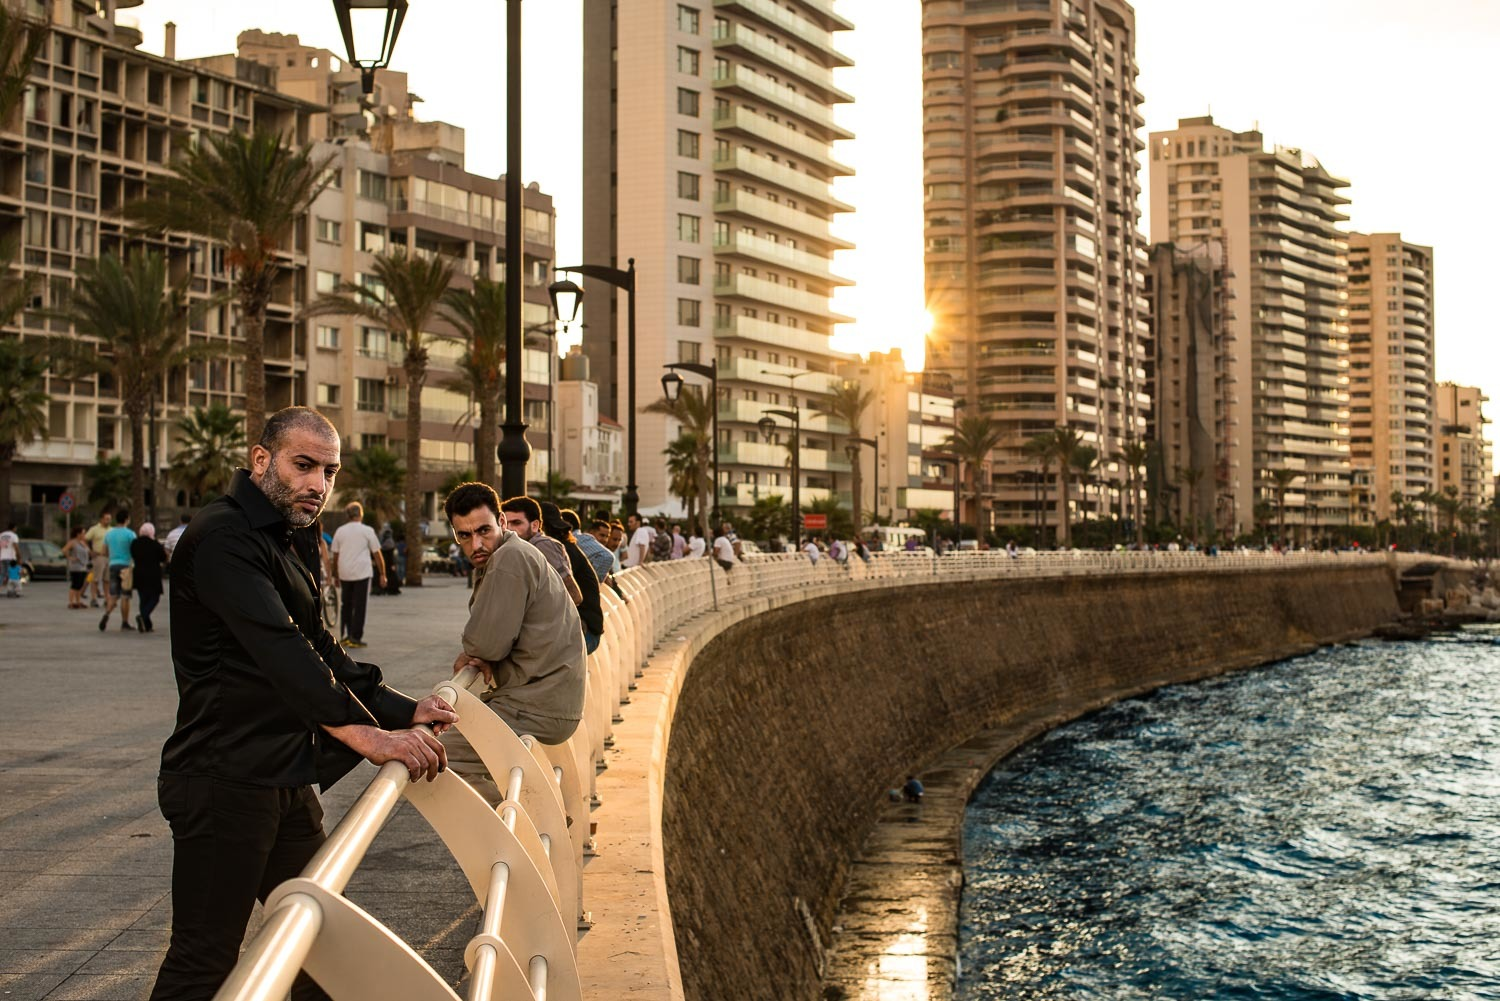 Men contemplate the Mediterranean Sea from the Corniche, Beirut. During the first two years of the Syrian civil war, Lebanon had mostly remained untouched by the conflict raging in its neighbor country. However, a wave of car bombs changed that scenario.